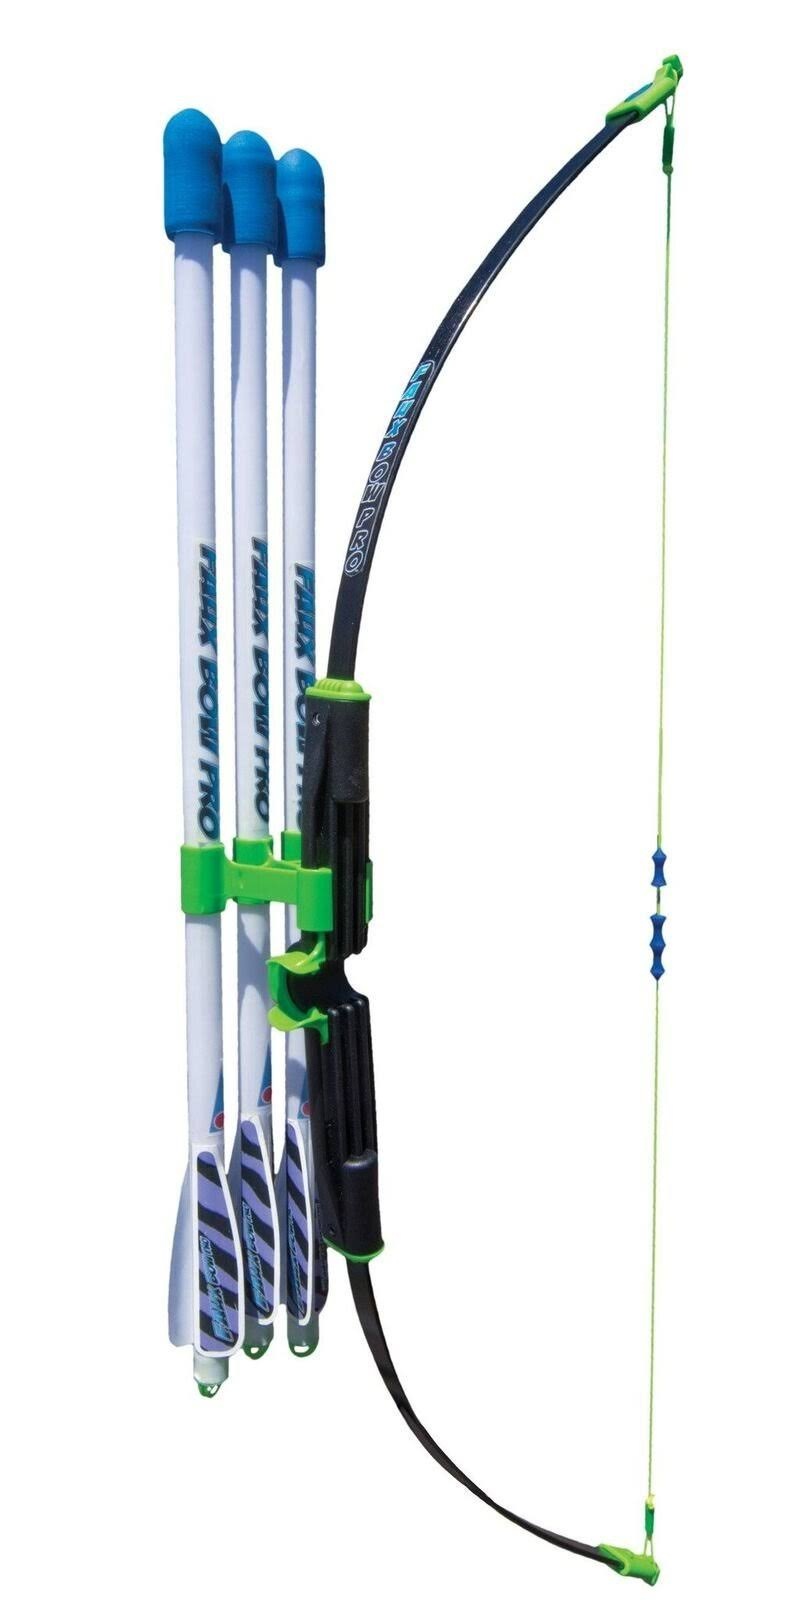 Marky Sparky Faux Bow Pro - Shoots Over 200 Feet - Bow and Patented Arrow Archery Set